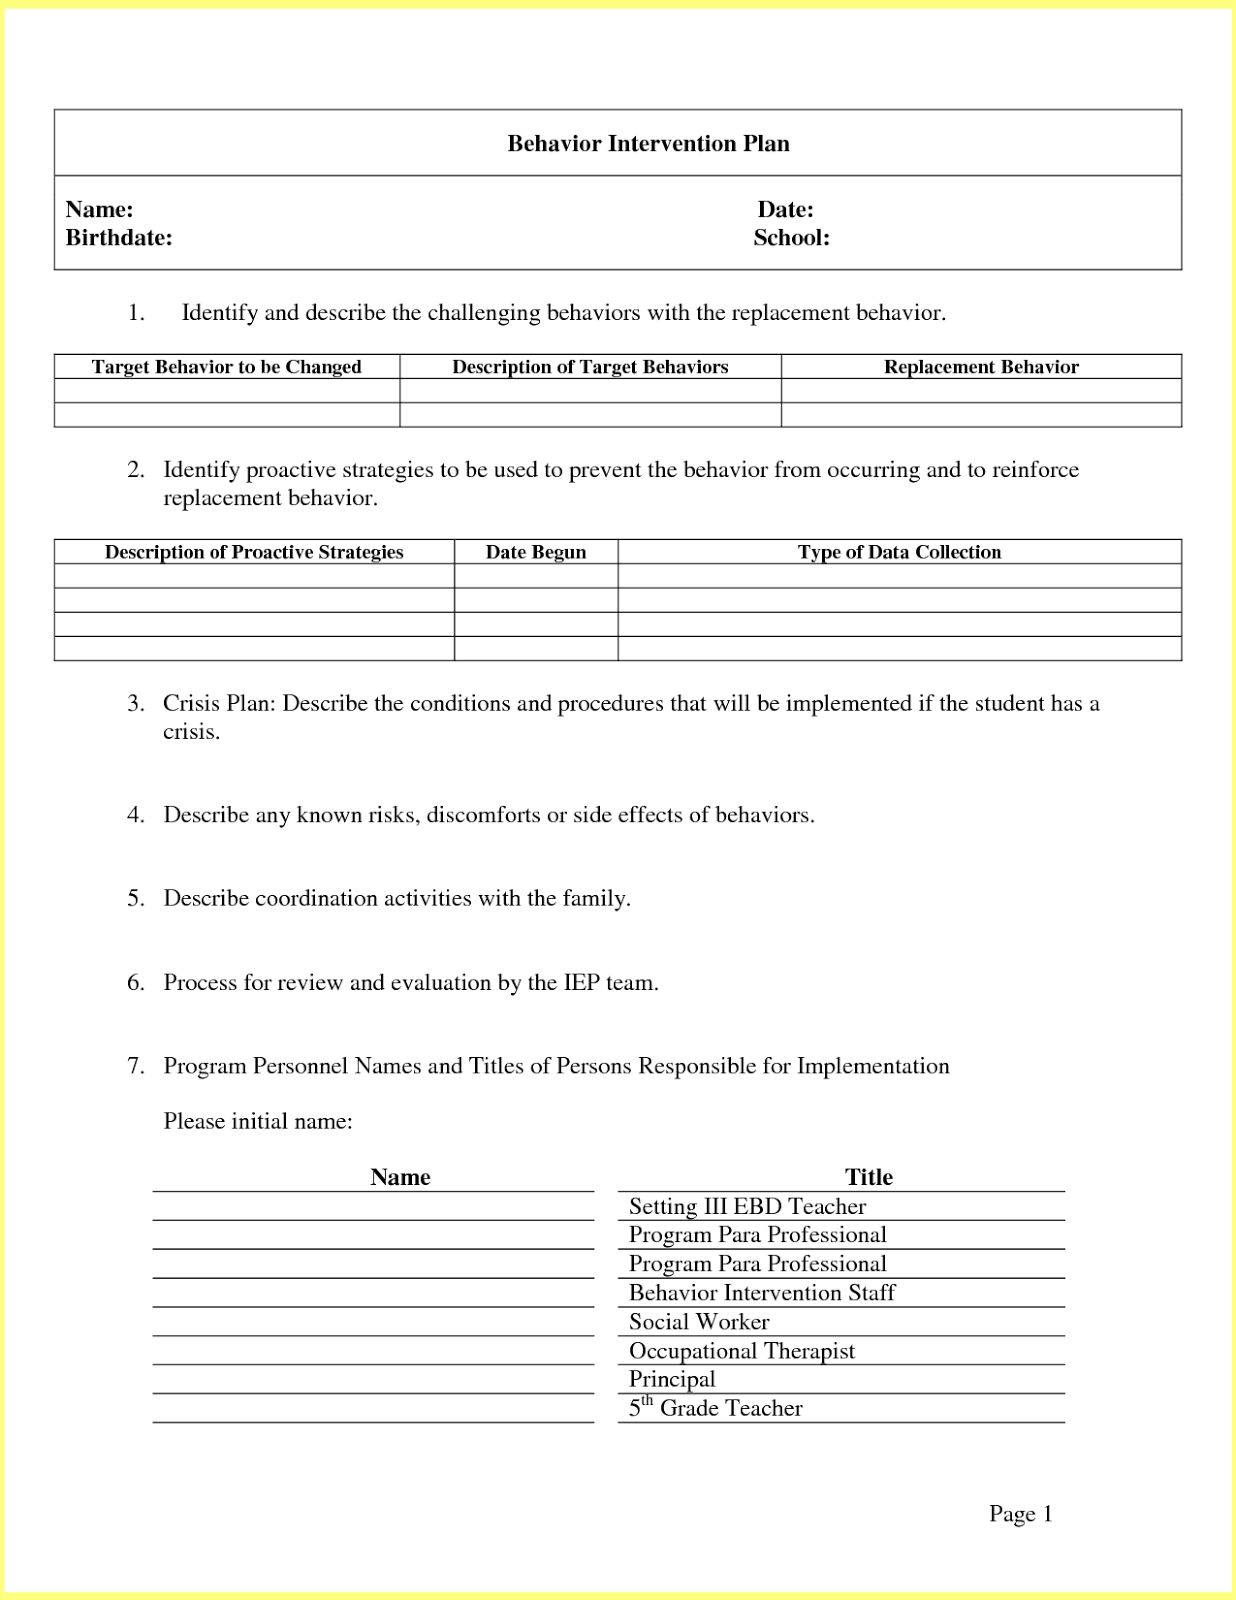 The Surprising Intervention Report Template Behavior Intervention Plan Within Int Behavior Intervention Plan Behavior Interventions Treatment Plan Template Mental health crisis plan template